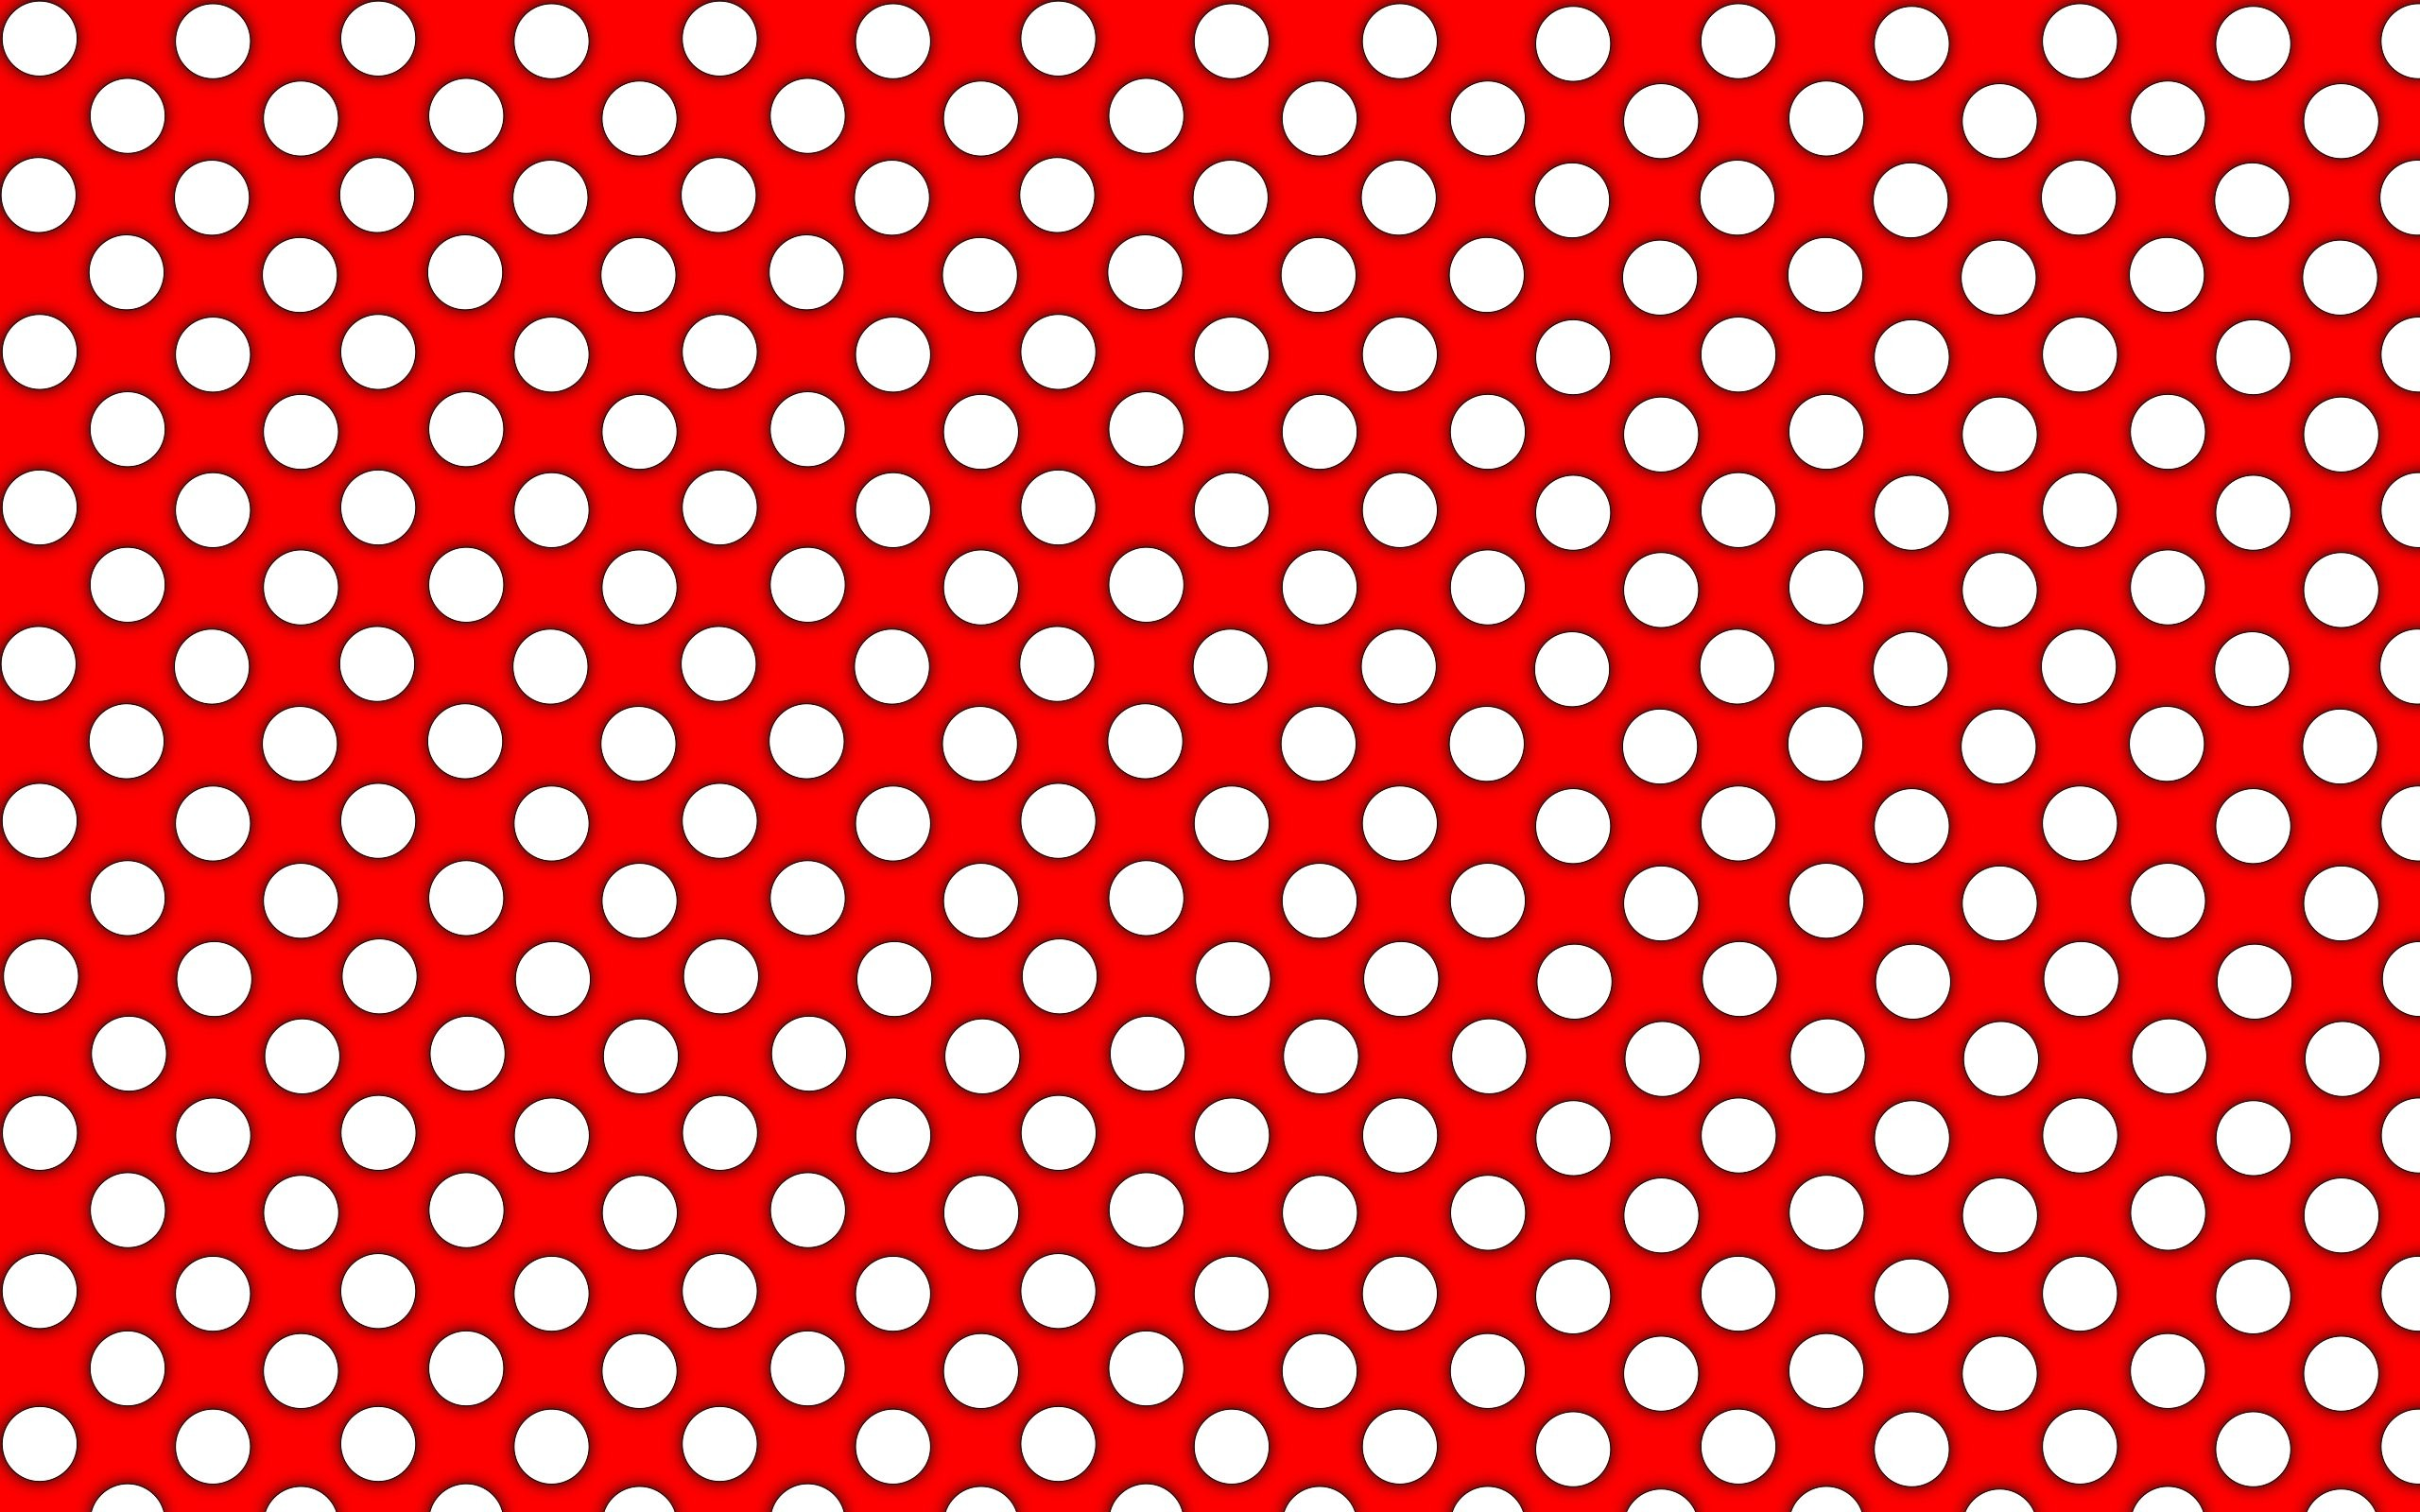 2560x1600 Hd Wallpaper Polka Dot Card Stock: Wallpapers for Gt Red Polka Dots .